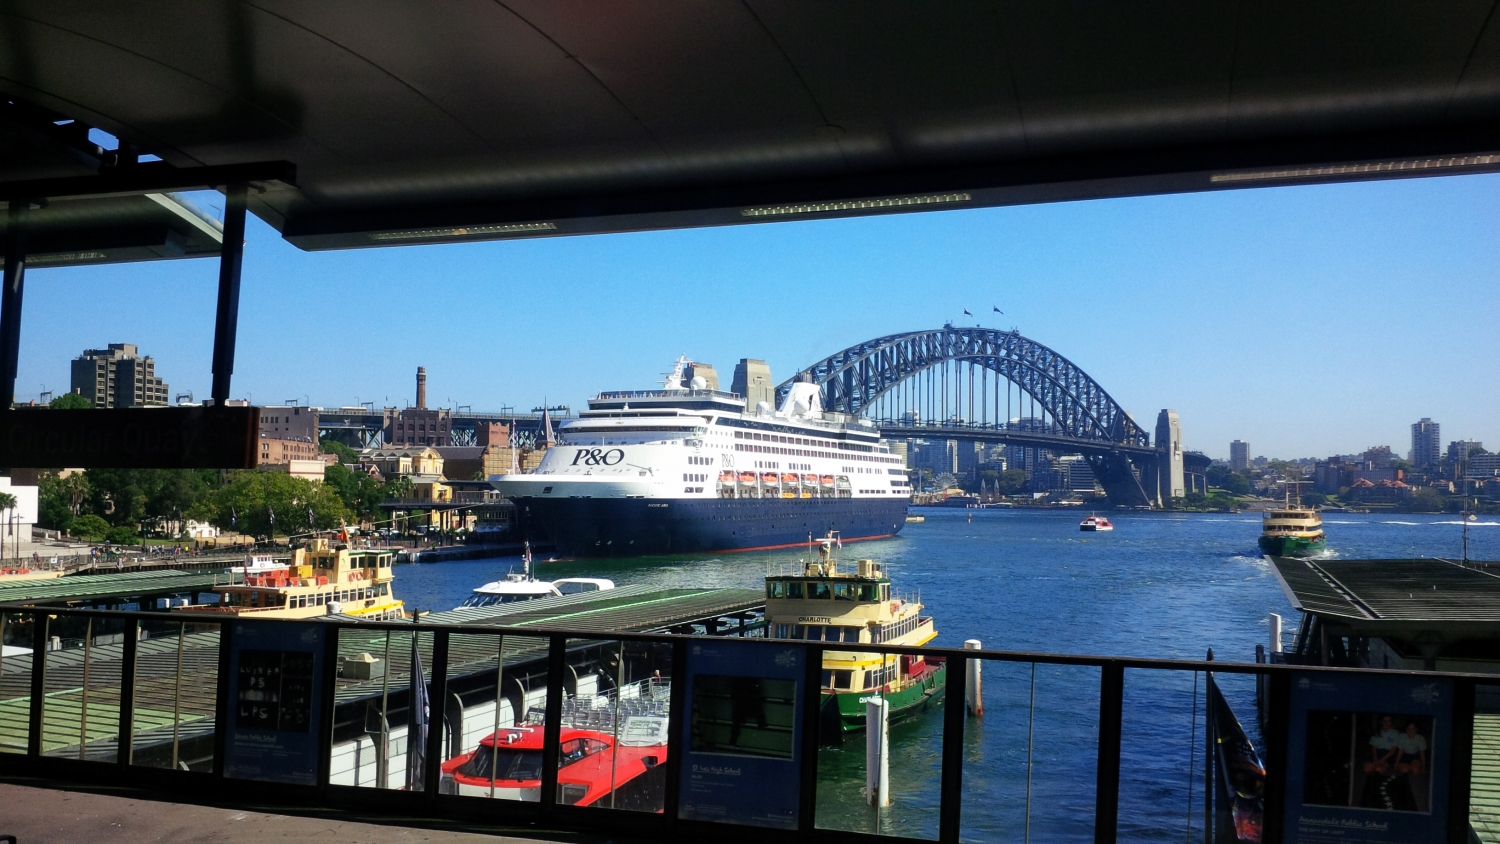 Large ocean liner with dark blue hull alongside passenger terminal at circular quay, Sydney Harbour with the Sydney Harbour Bridge in the background and ferry terminals in the foreground